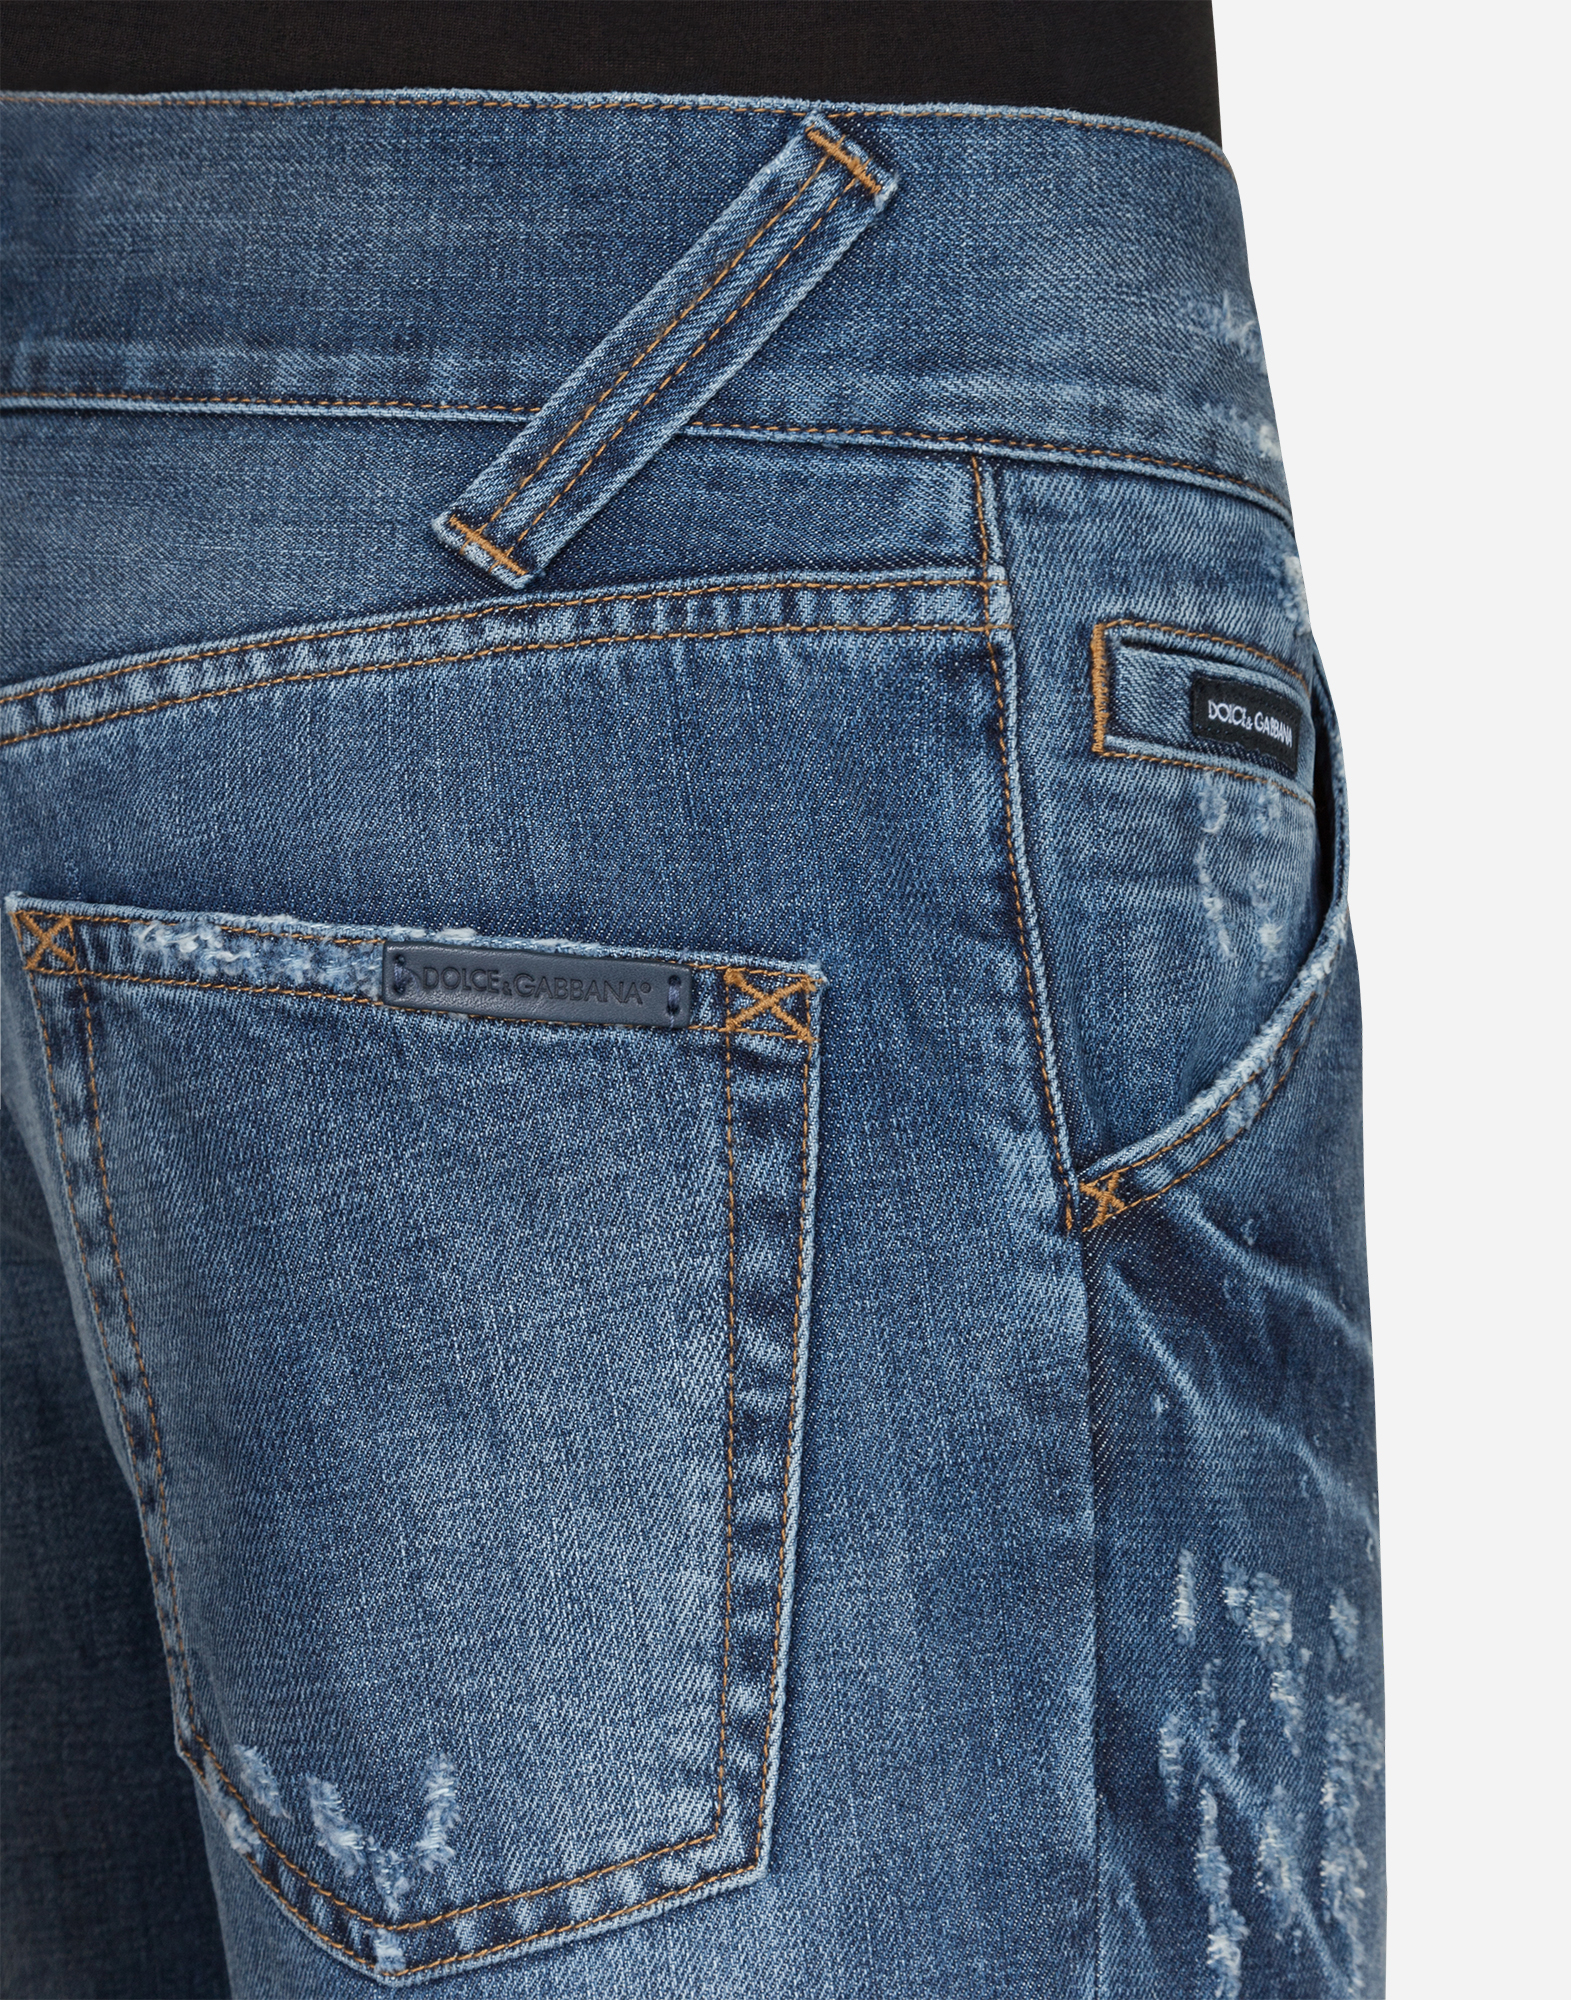 Dolce&Gabbana LIMITED EDITION JEANS